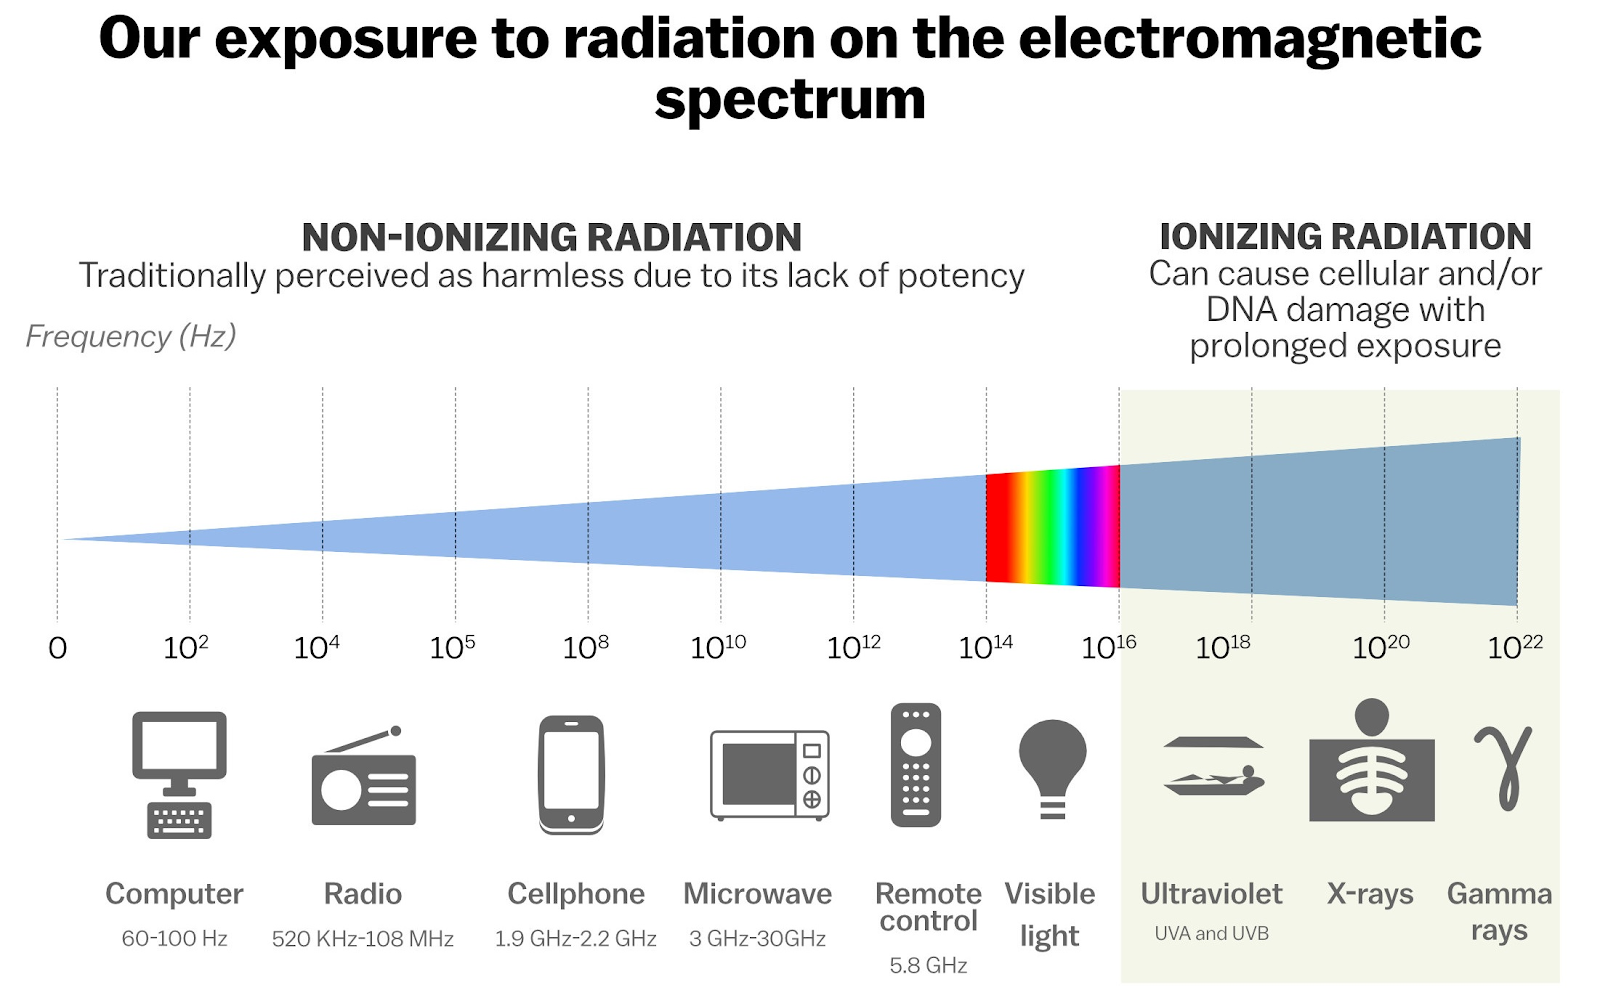 The risks of different products based on their placement on the electromagnetic spectrum